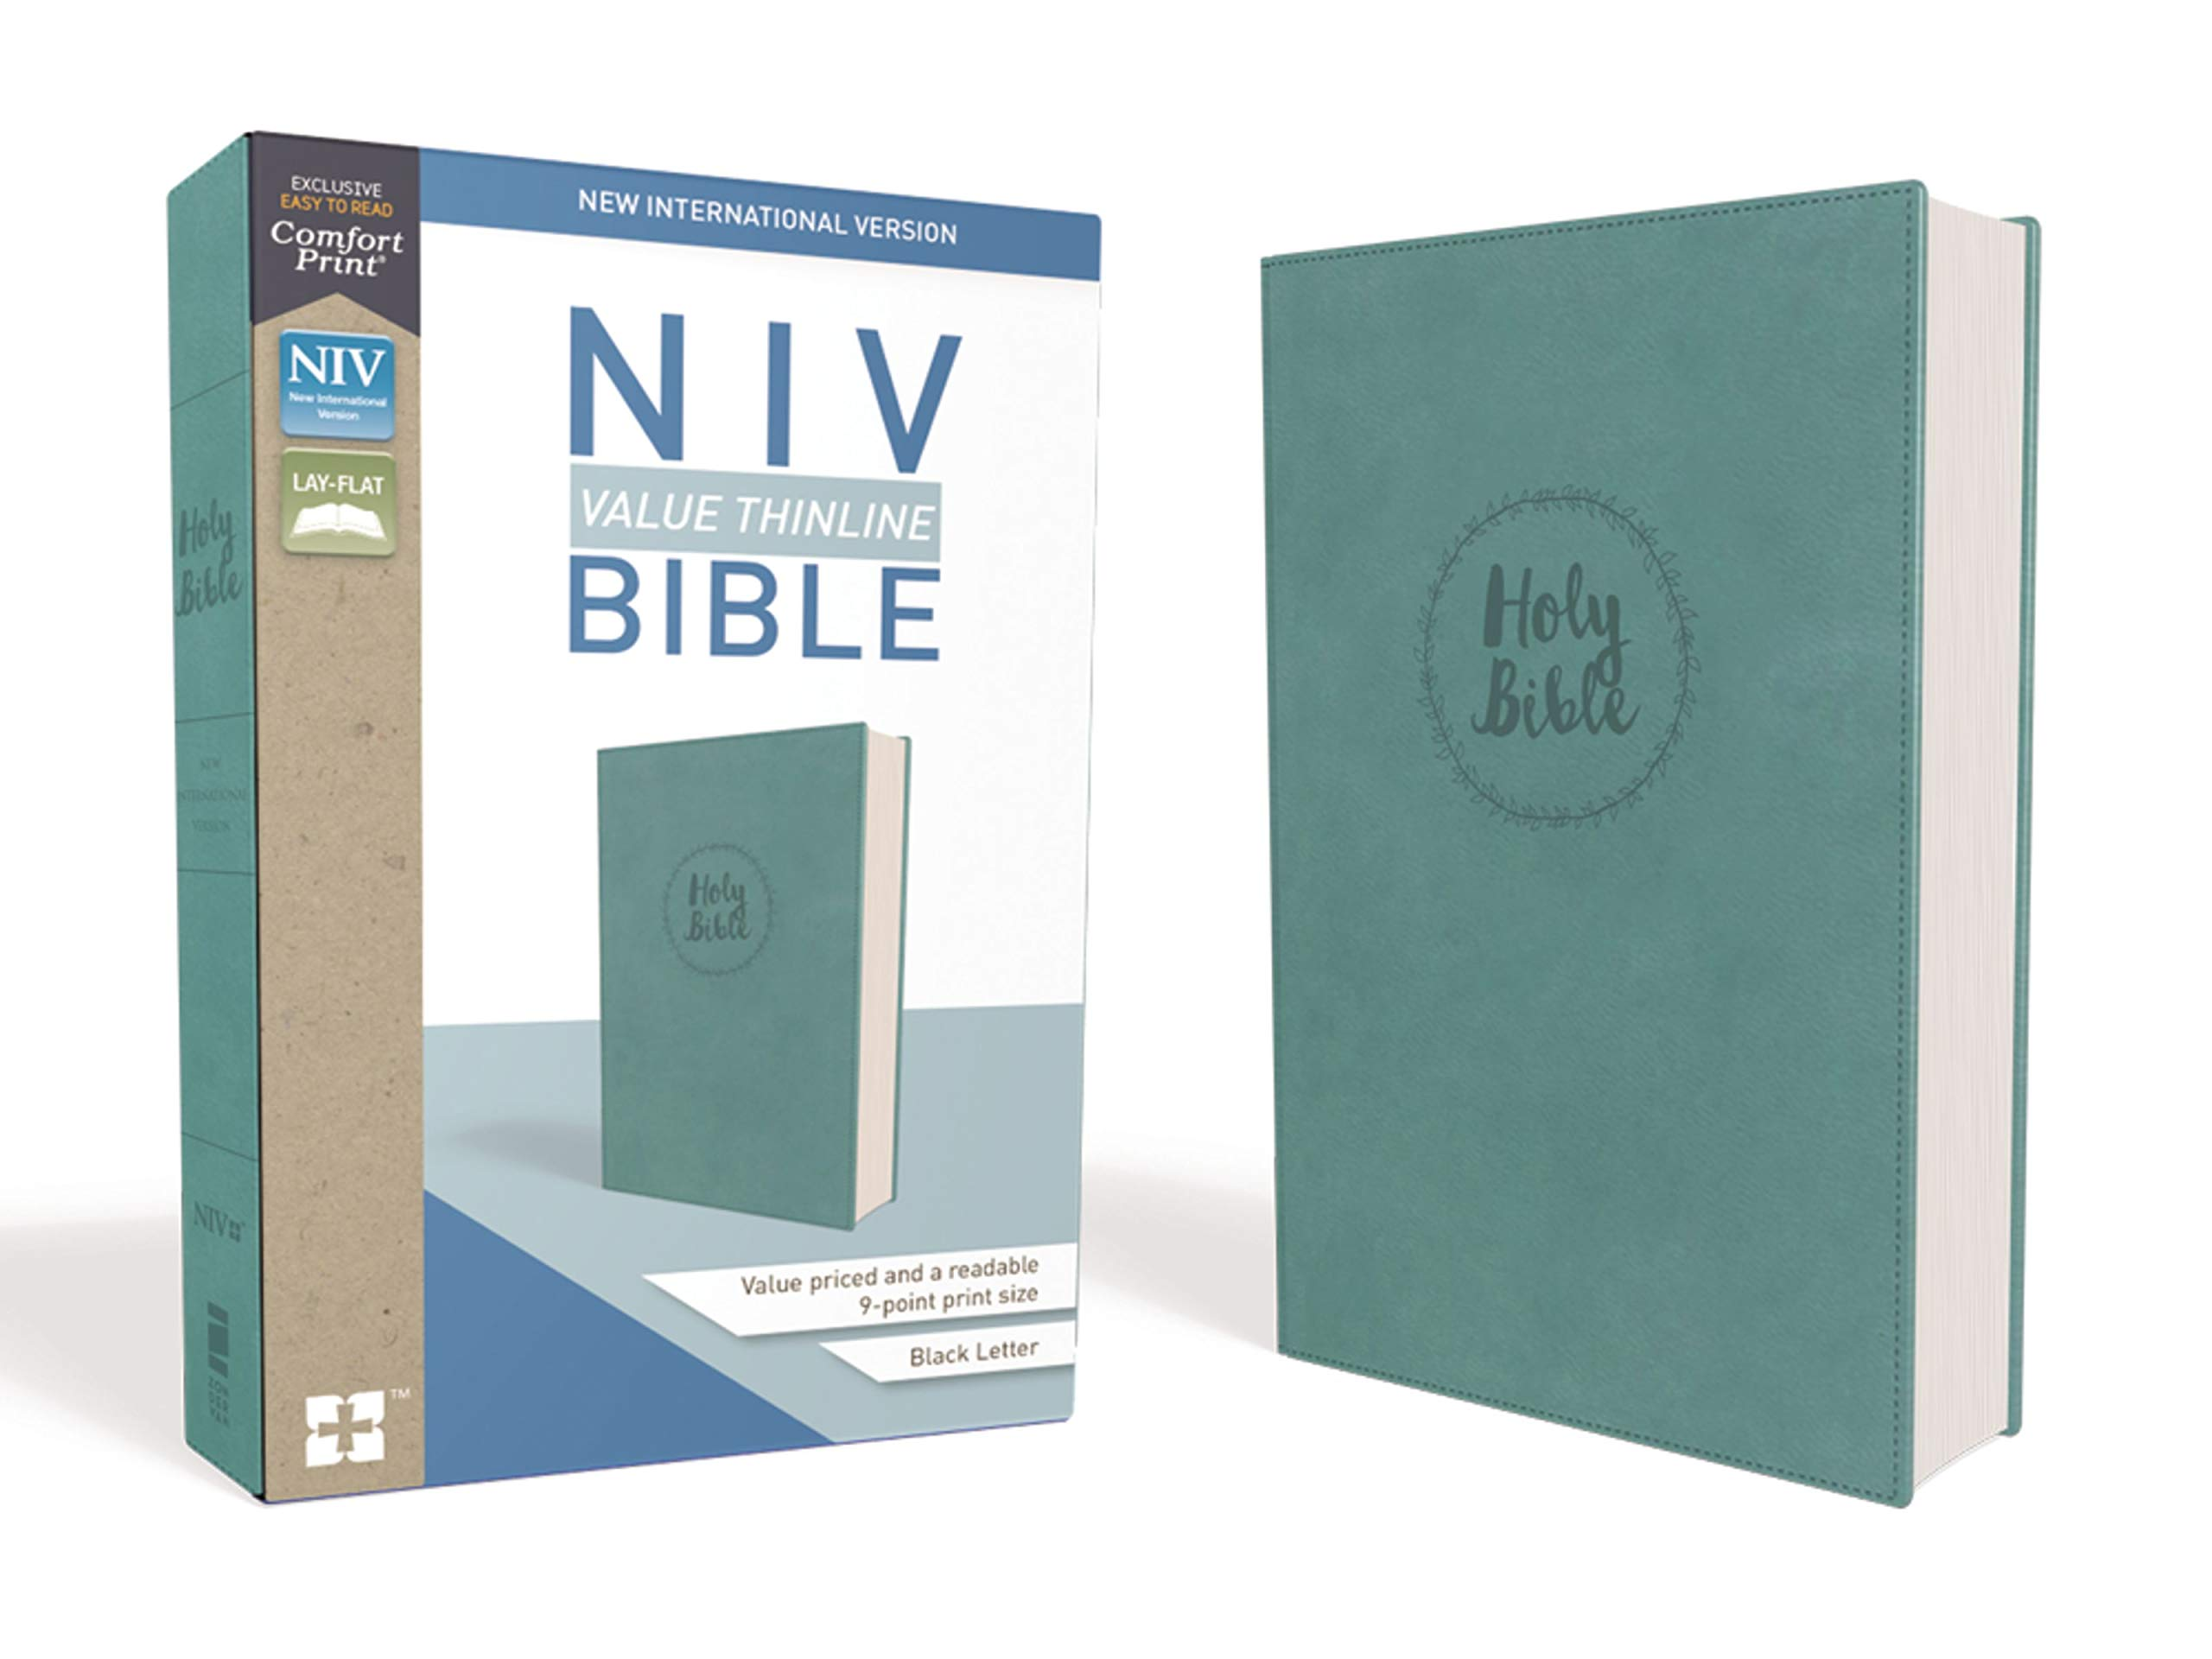 NIV, Value Thinline Bible, Leathersoft, Teal, Comfort Print